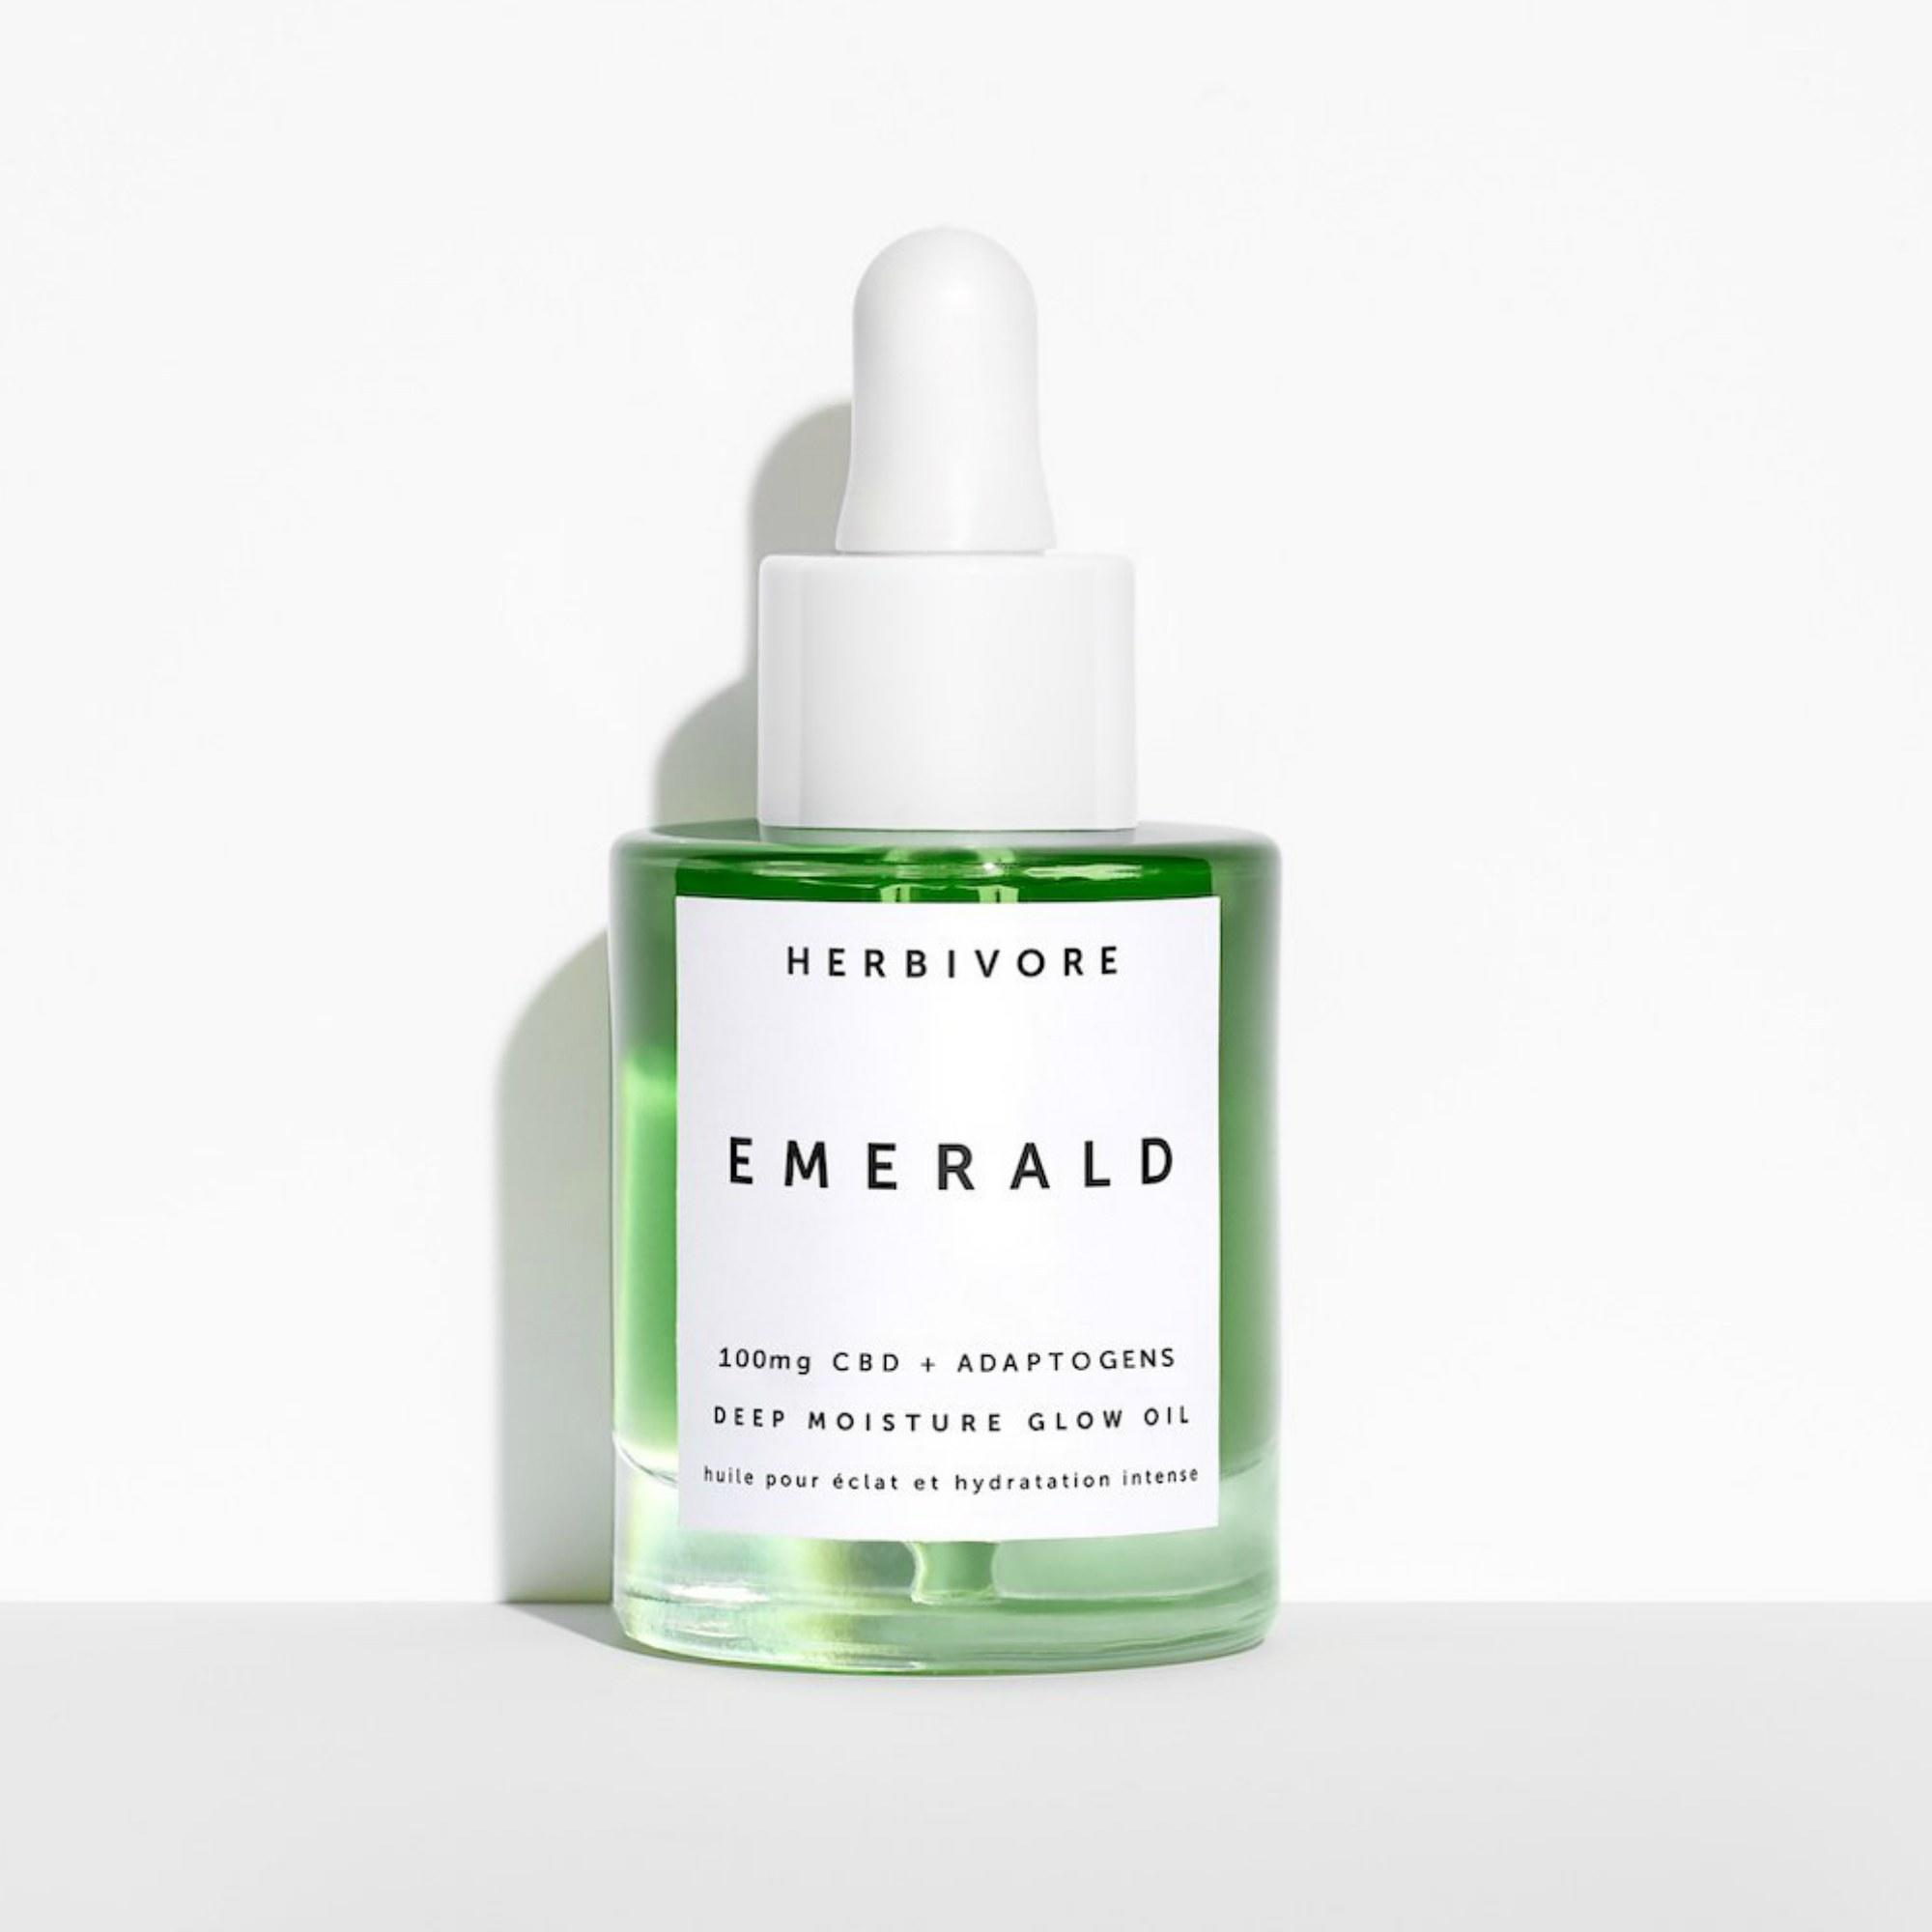 Best Skin Care Products: The 17 Best CBD Skin-Care Products To Try Right Now